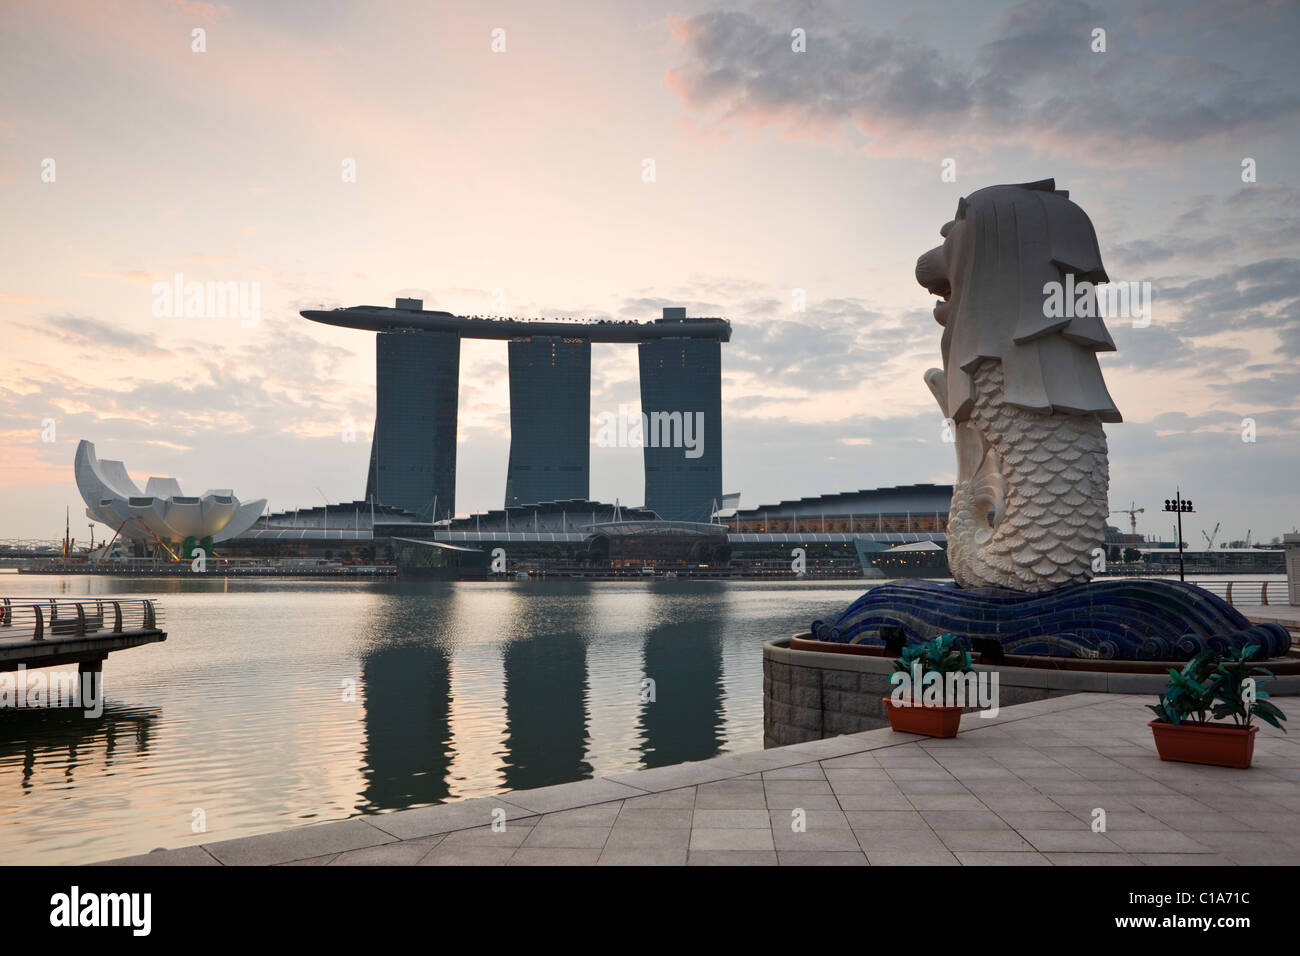 The Merlion Statue at dawn, with the Marina Bay Sands in the background.  Marina Bay, Singapore - Stock Image